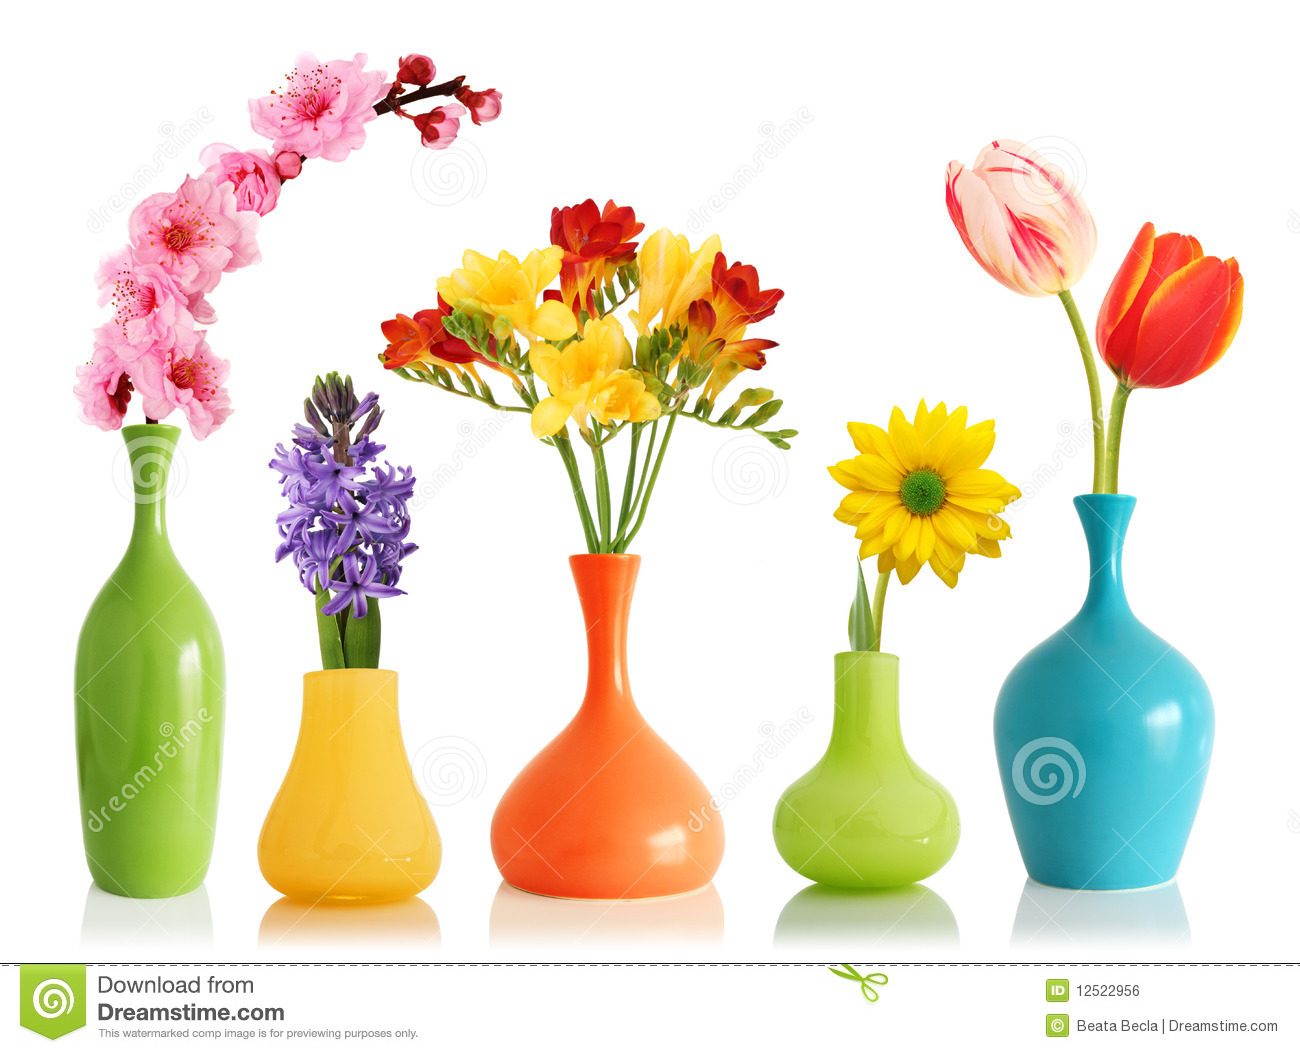 cm lsa vases vase bud international colour dp uk amazon flower kitchen flowers peacock co home